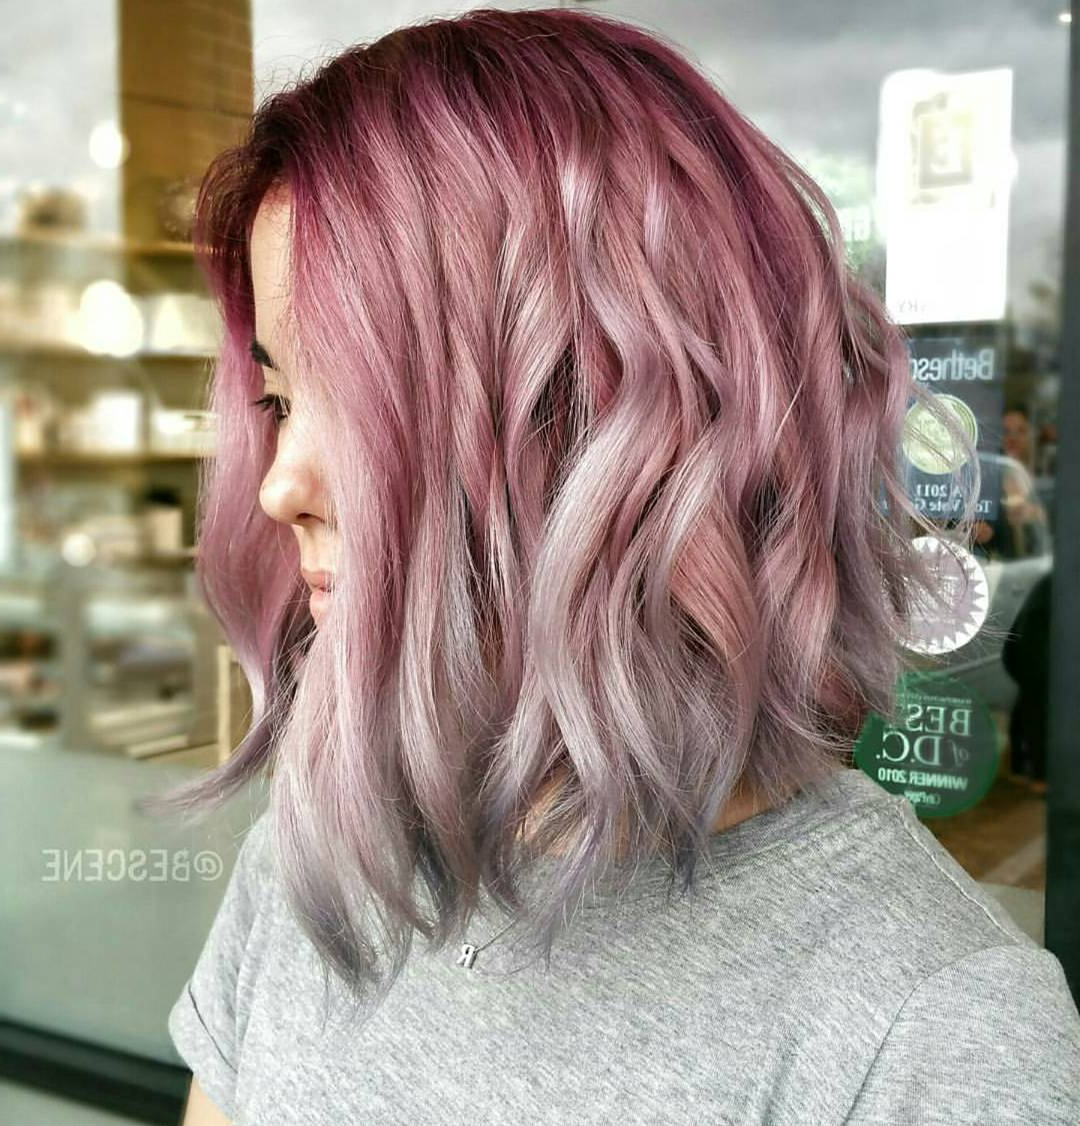 [%Most Popular Layered Haircuts For Thick Wavy Hair With Regard To 30 Edgy Medium Length Haircuts For Thick Hair [October, 2018]|30 Edgy Medium Length Haircuts For Thick Hair [October, 2018] For Current Layered Haircuts For Thick Wavy Hair%] (Gallery 14 of 20)